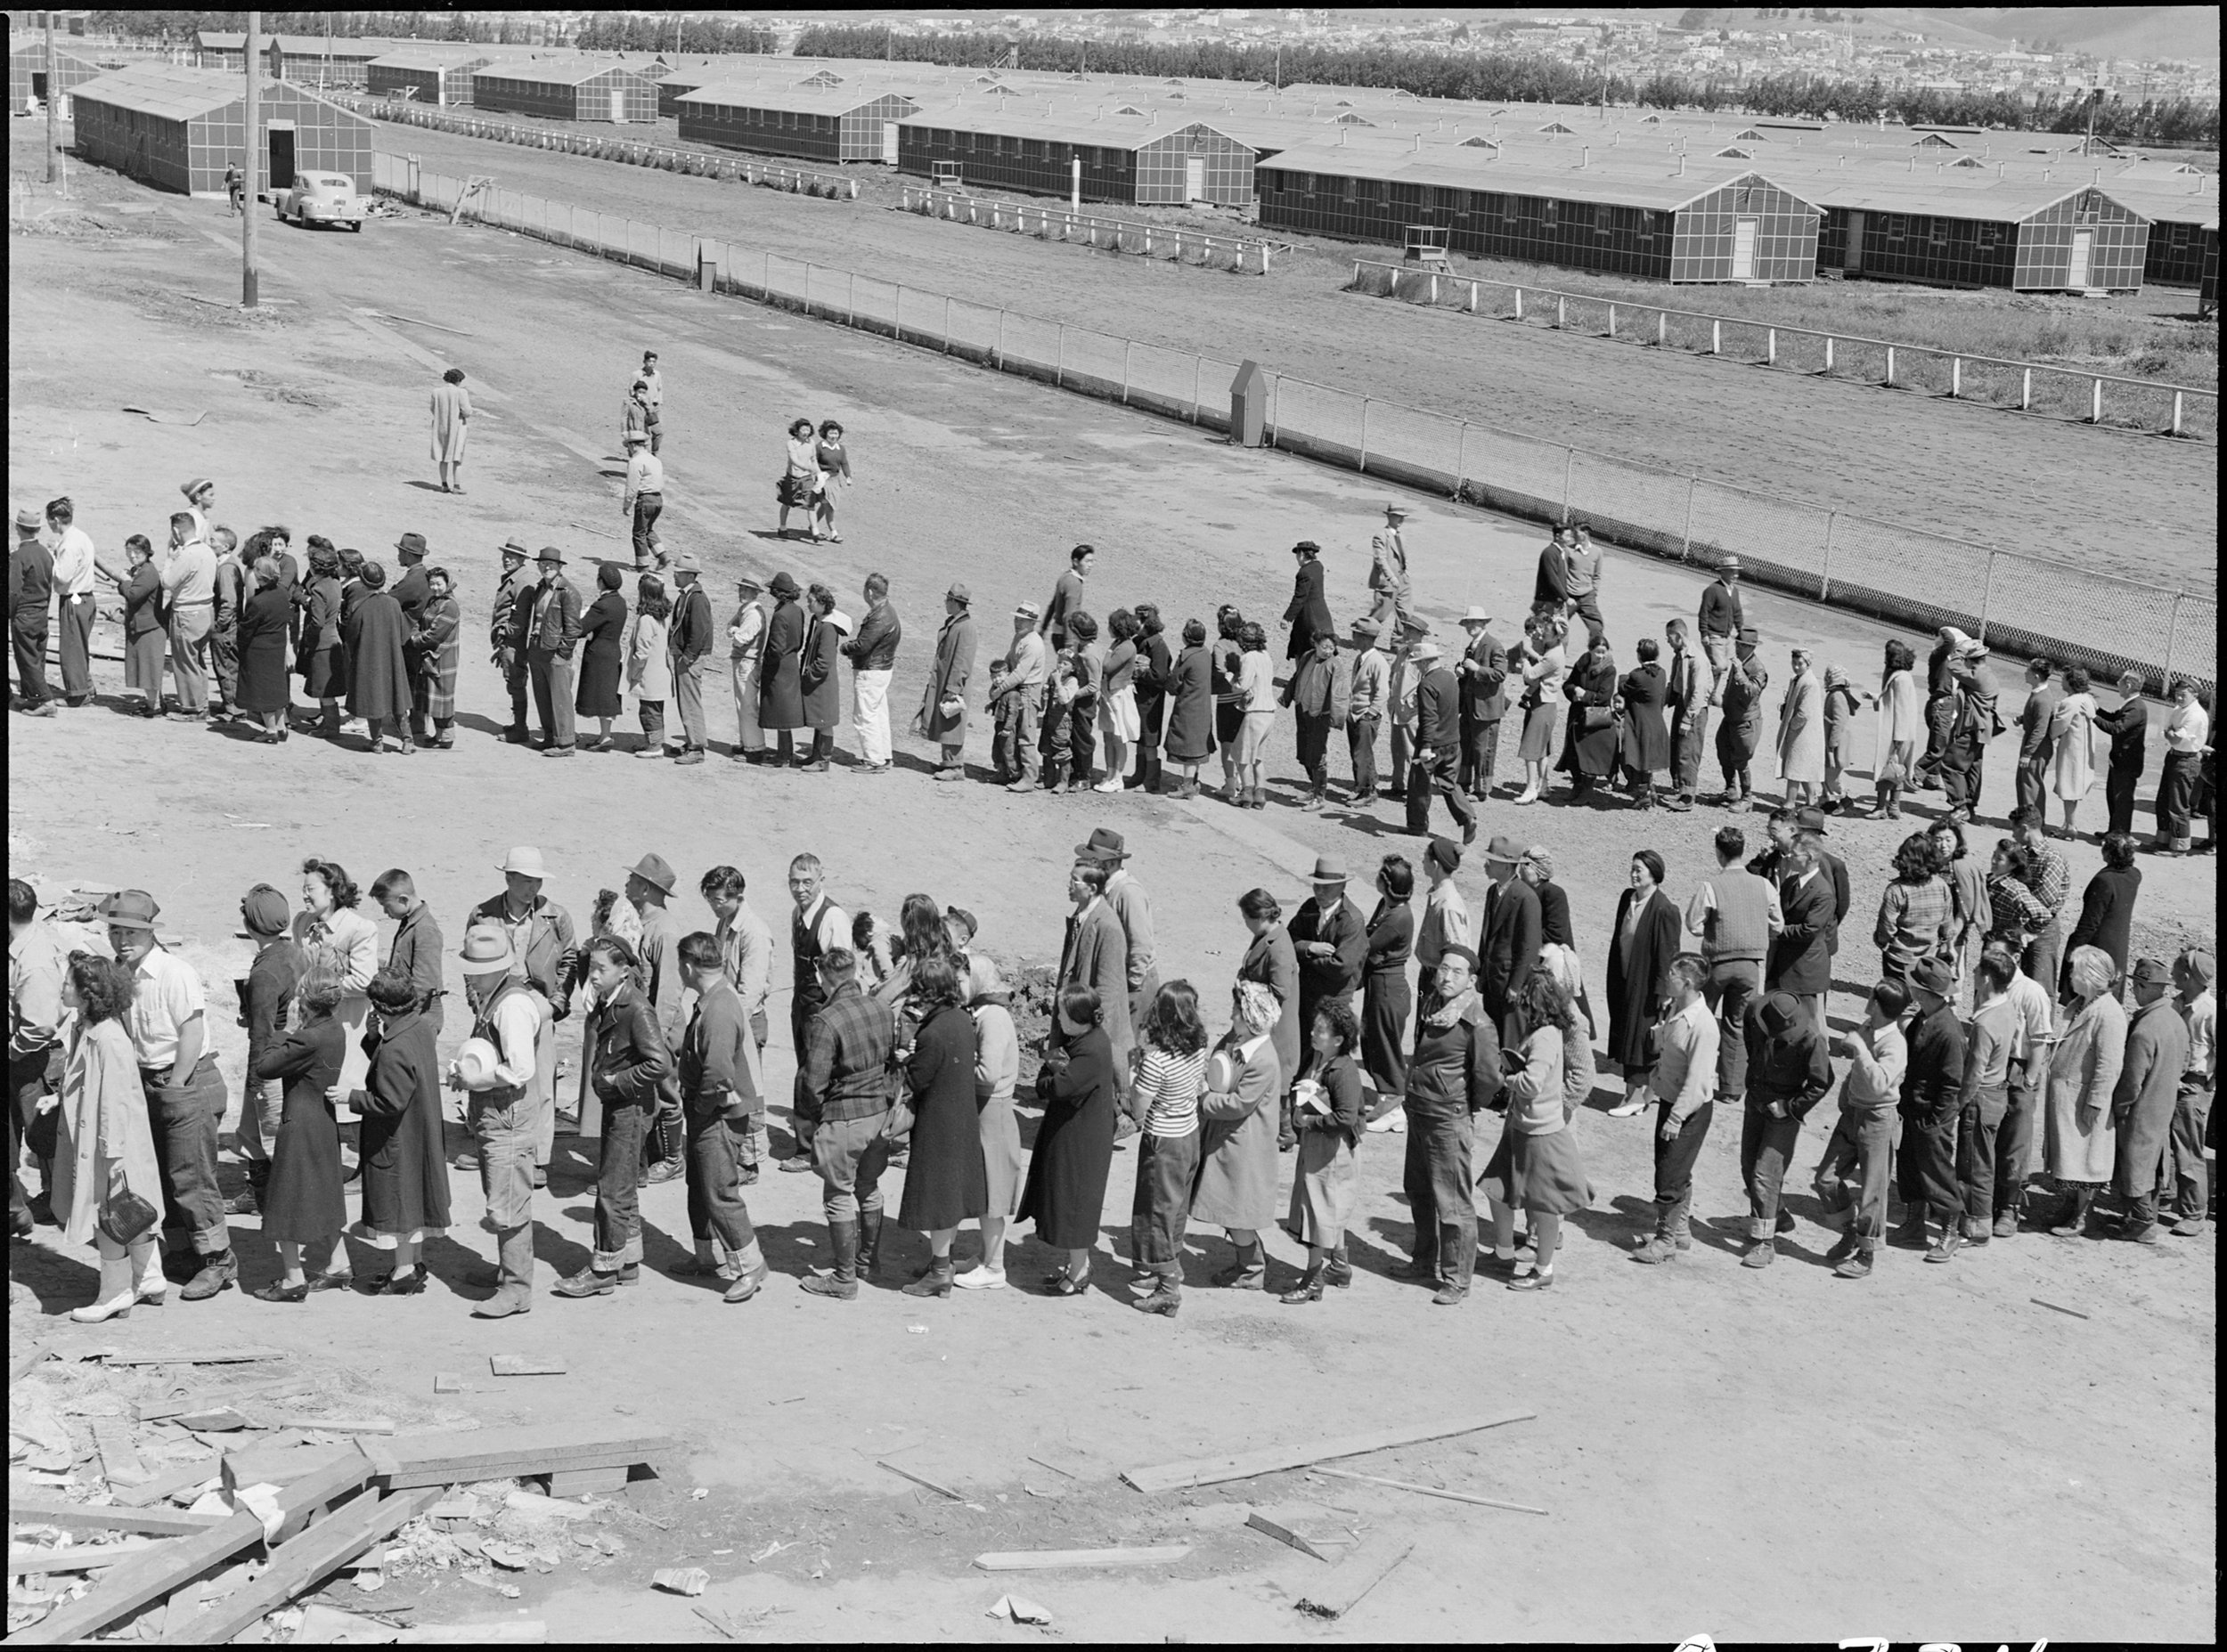 April 29, 1942 — San Bruno, California. This assembly center has been open for two days. Bus-load after bus-load of evacuated persons of Japanese ancestry are arriving on this day after going through the necessary procedures, they are guided to the quarters assigned to them in the barracks. Only one mess hall was operating today. Photograph shows line-up of newly arrived evacuees outside this mess hall at noon. Note barracks in background, just built, for family units. There are three types of quarters in the center of post office. The wide road which runs diagonally across the photograph is the former racetrack.